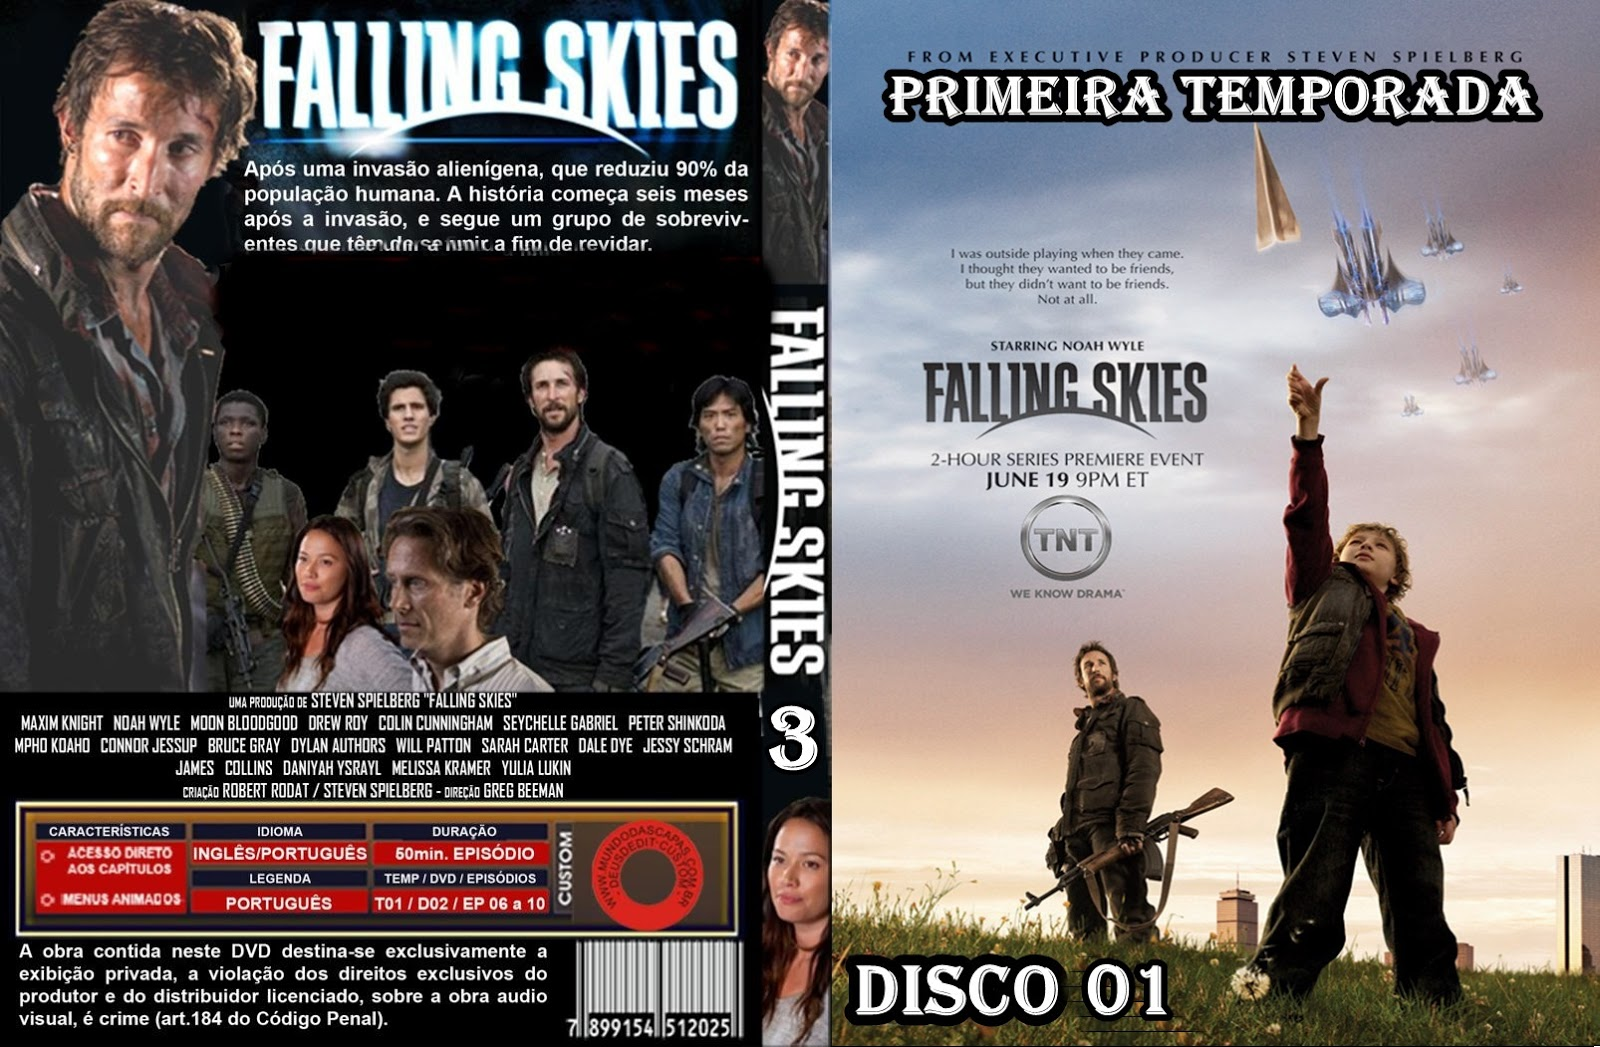 Falling Skies Temporada 4 cap 412 dublado Download